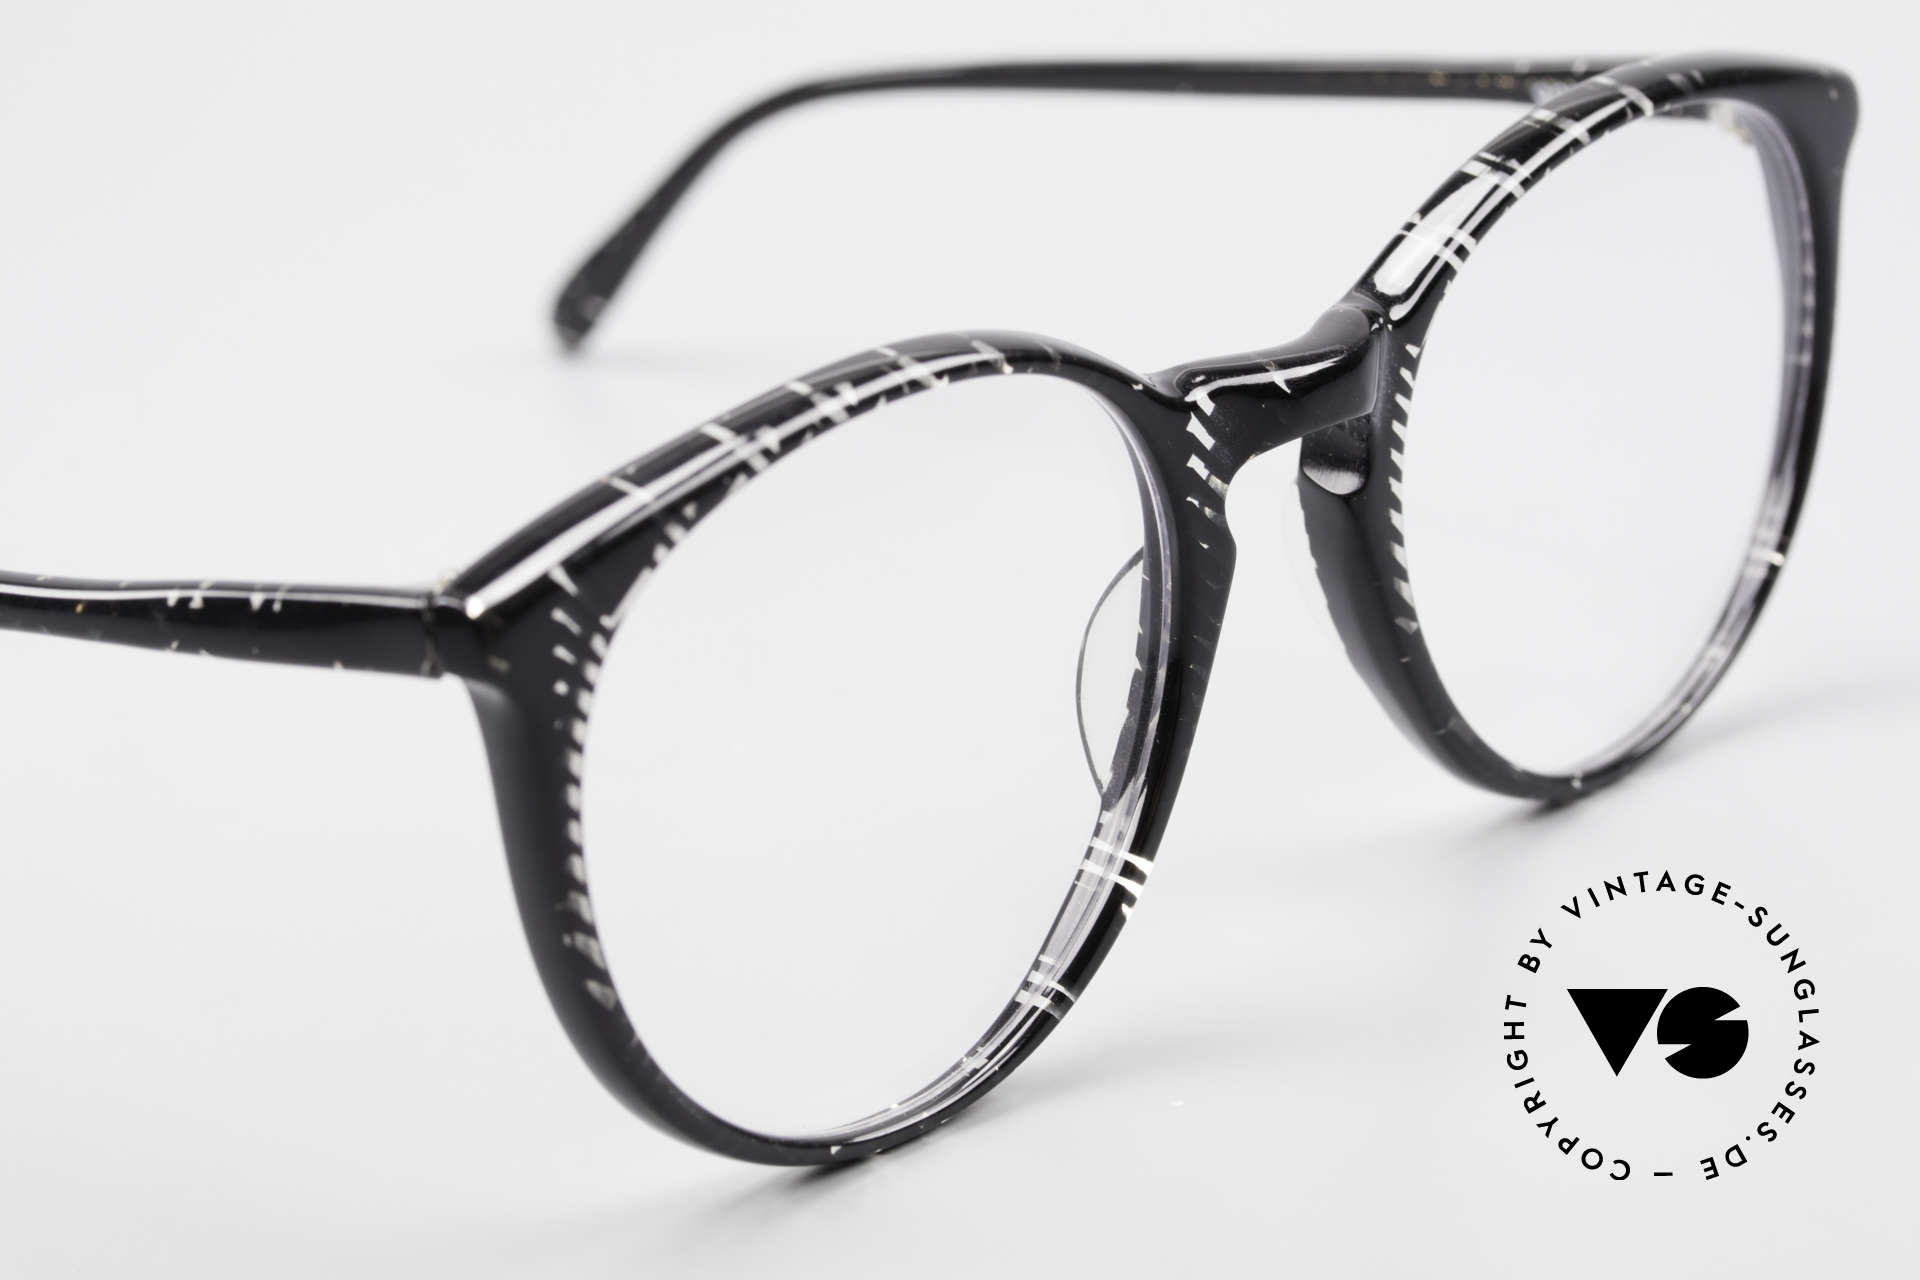 Alain Mikli 901 / 299 Panto Frame Black Crystal, NO RETRO eyewear, but an old Original from 1989, Made for Men and Women